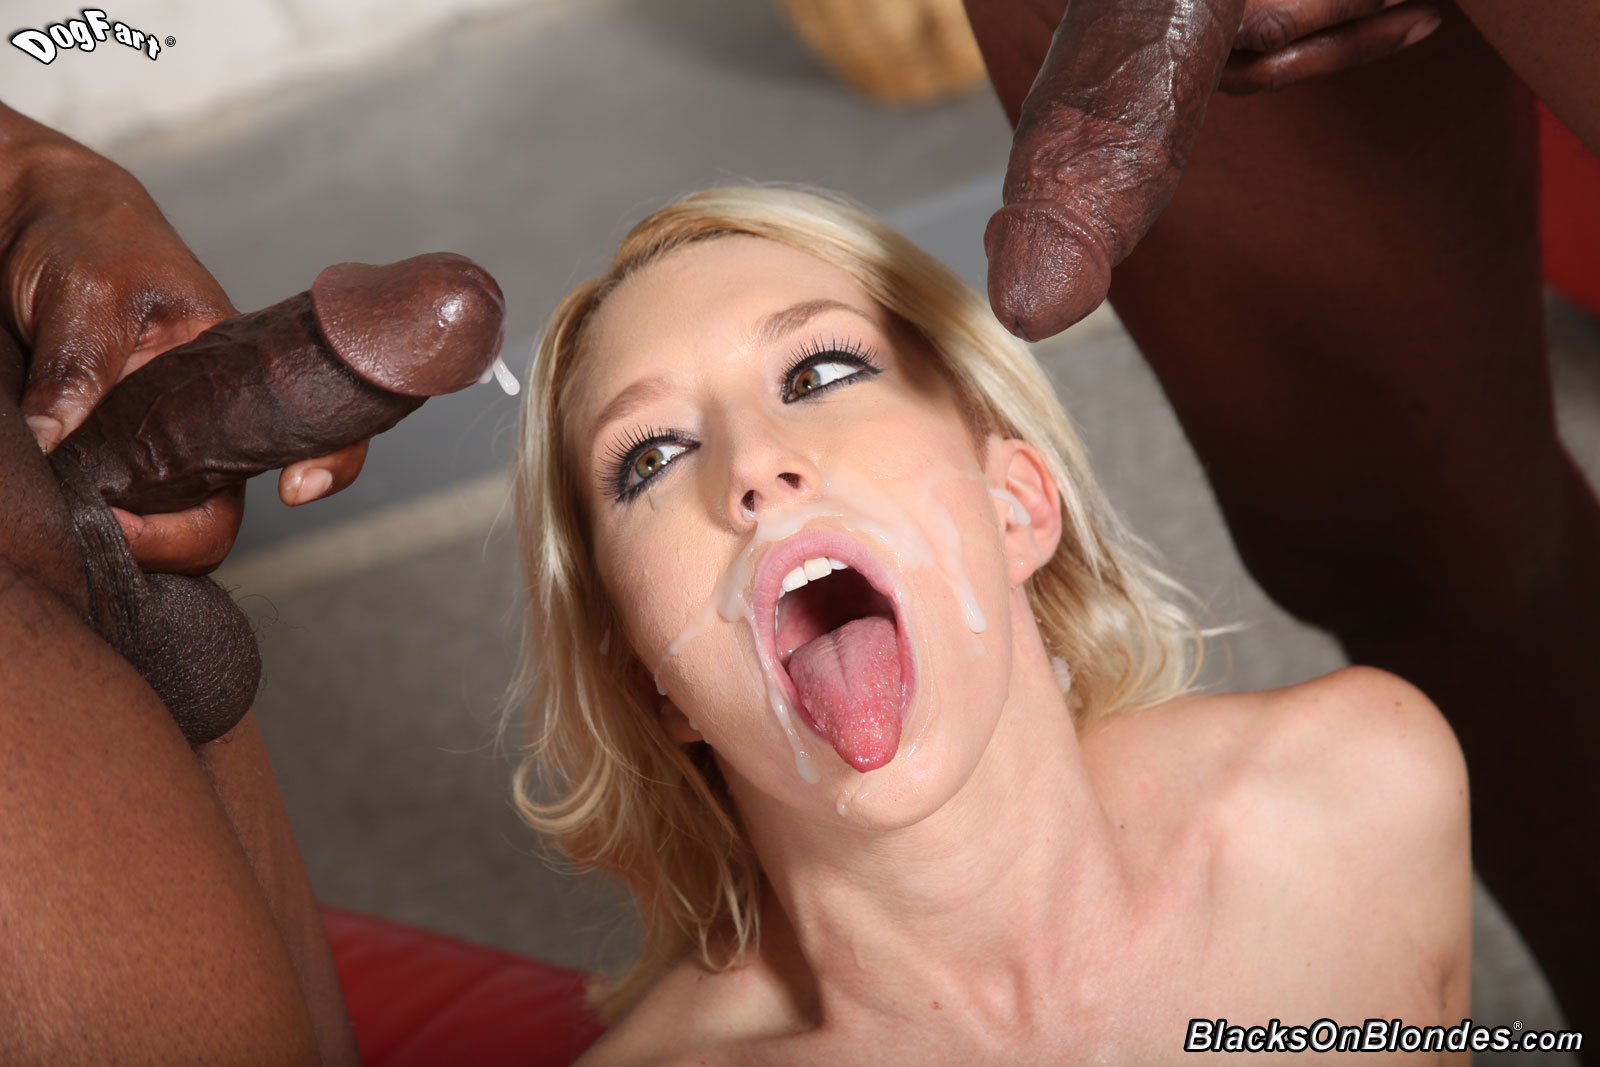 That necessary. Blacks on blondes interracial sex you